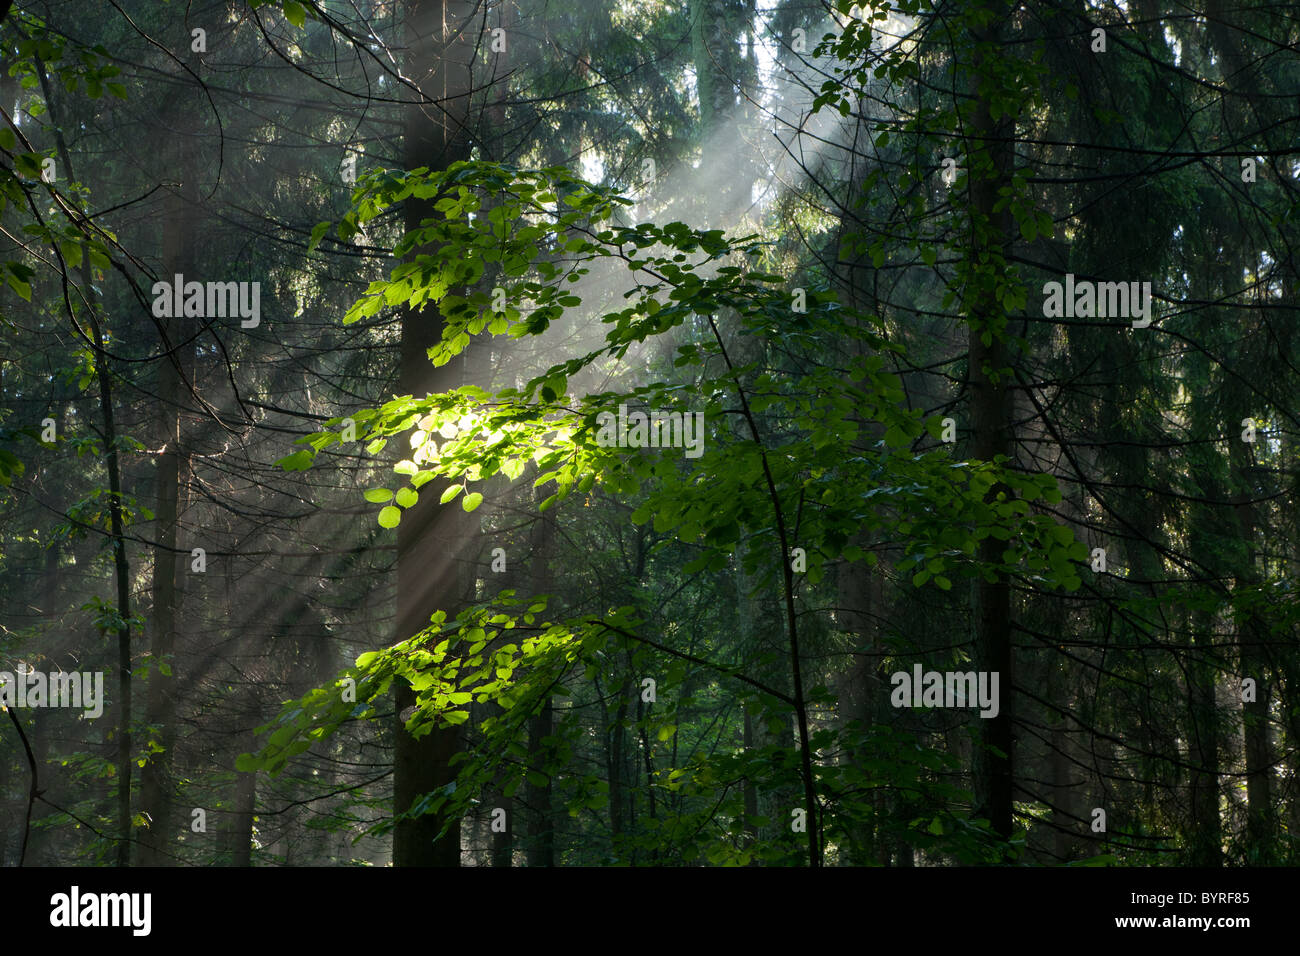 Sunny morning in the forest with hornbeam branch illuminated against spruces - Stock Image